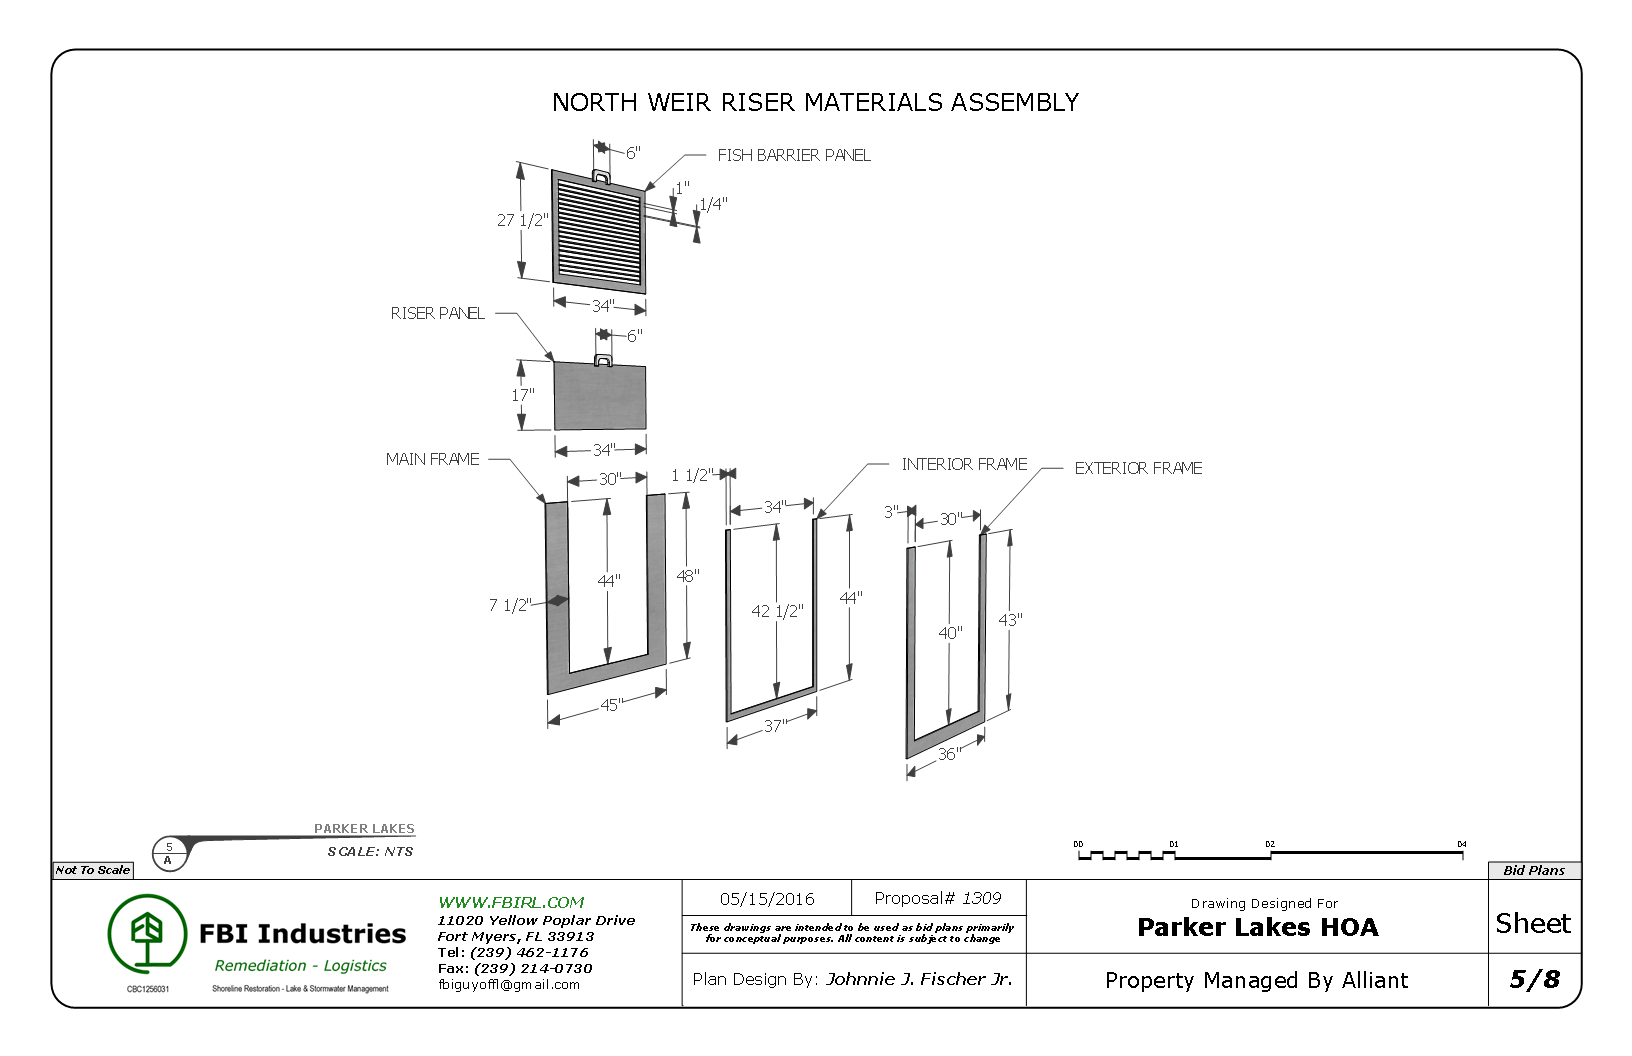 Proposal#1309_Parker Lakes Weir Presentation_Photos_5.png